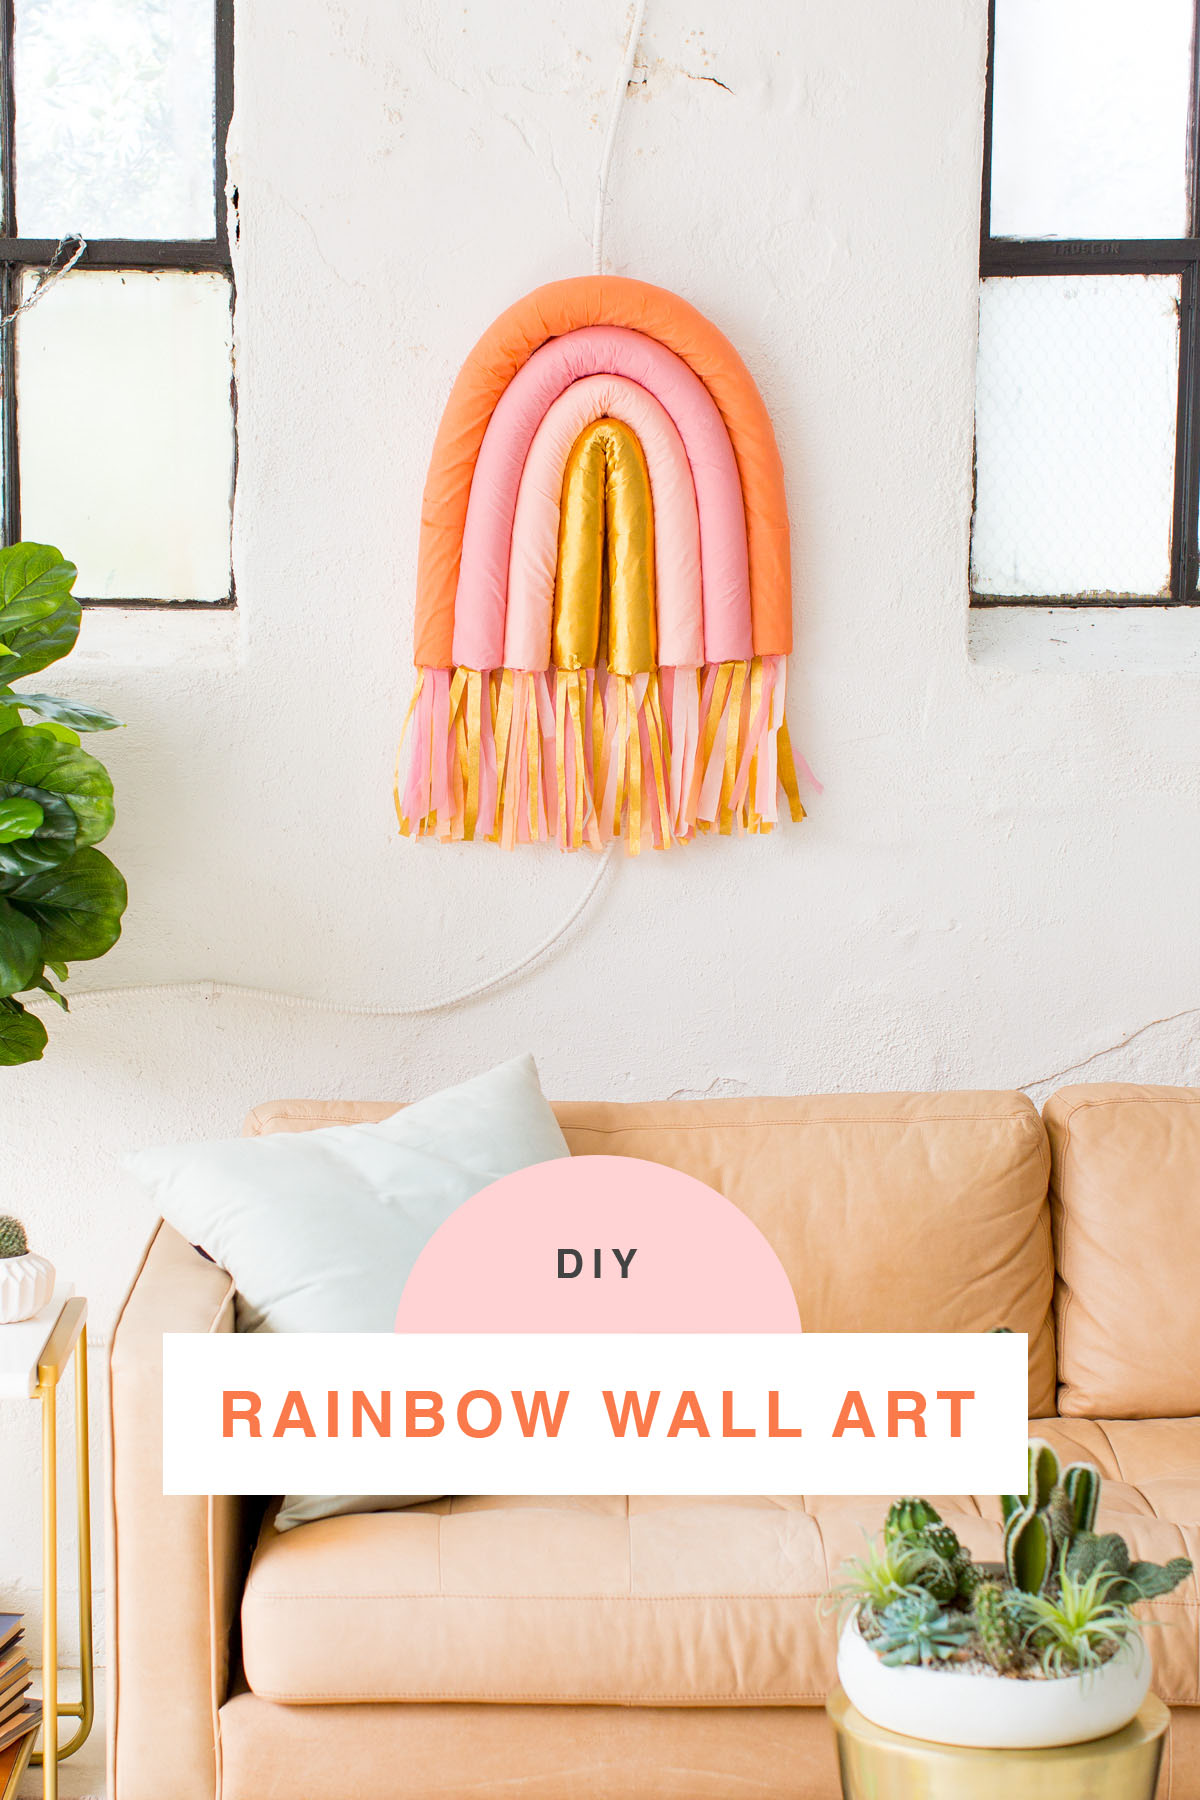 DIY Rainbow Art Wall Hanging by top Houston lifestyle blogger Ashley Rose of Sugar and Cloth #wallart #homedecor #diy #rainbow #decor #parties #partydecor